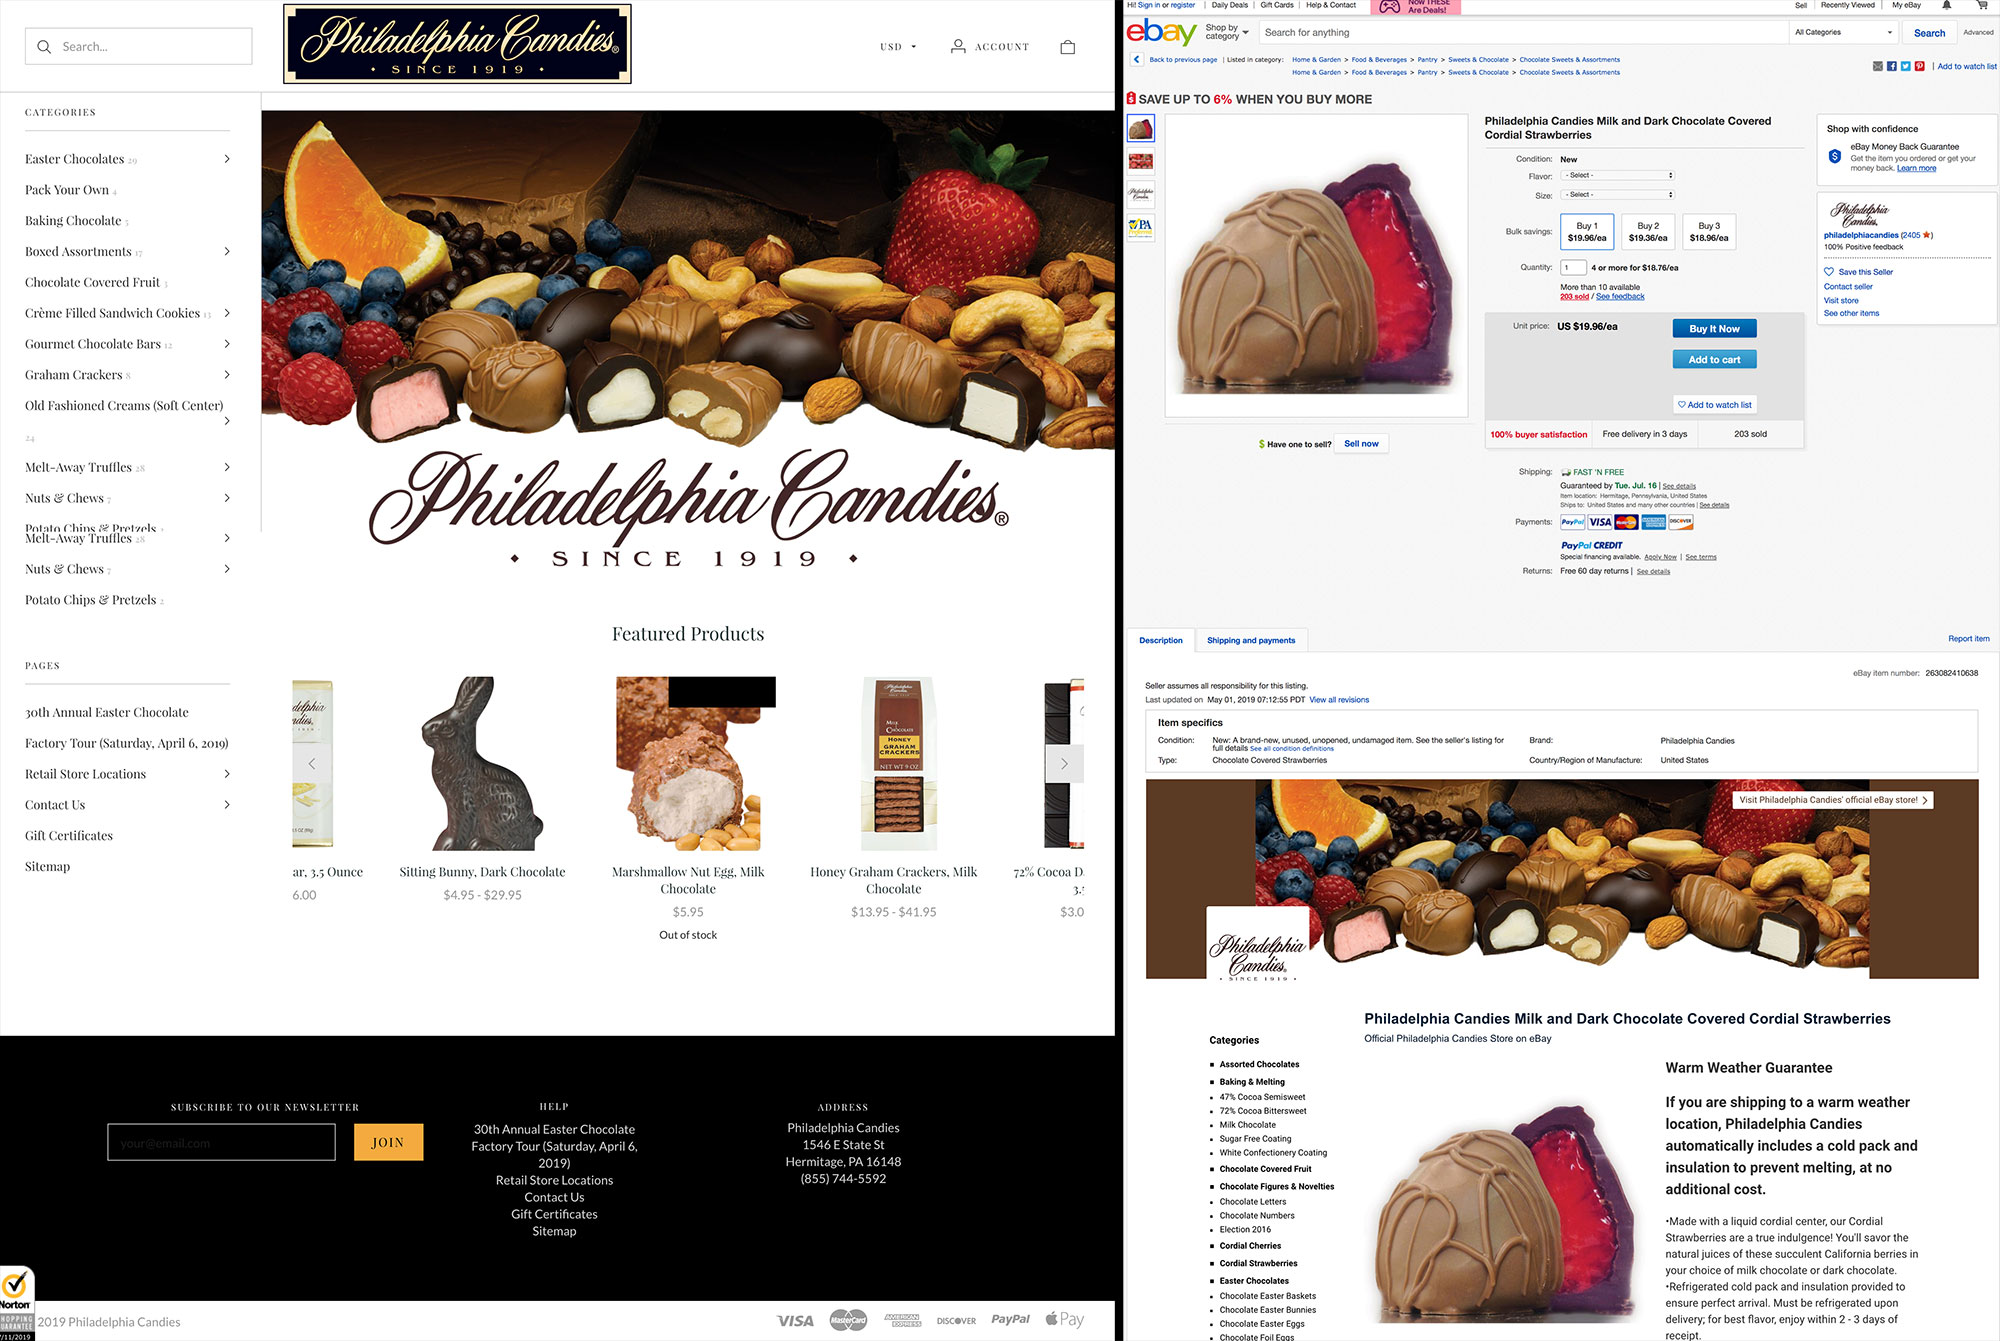 Philadelphia Candies website versus eBay.